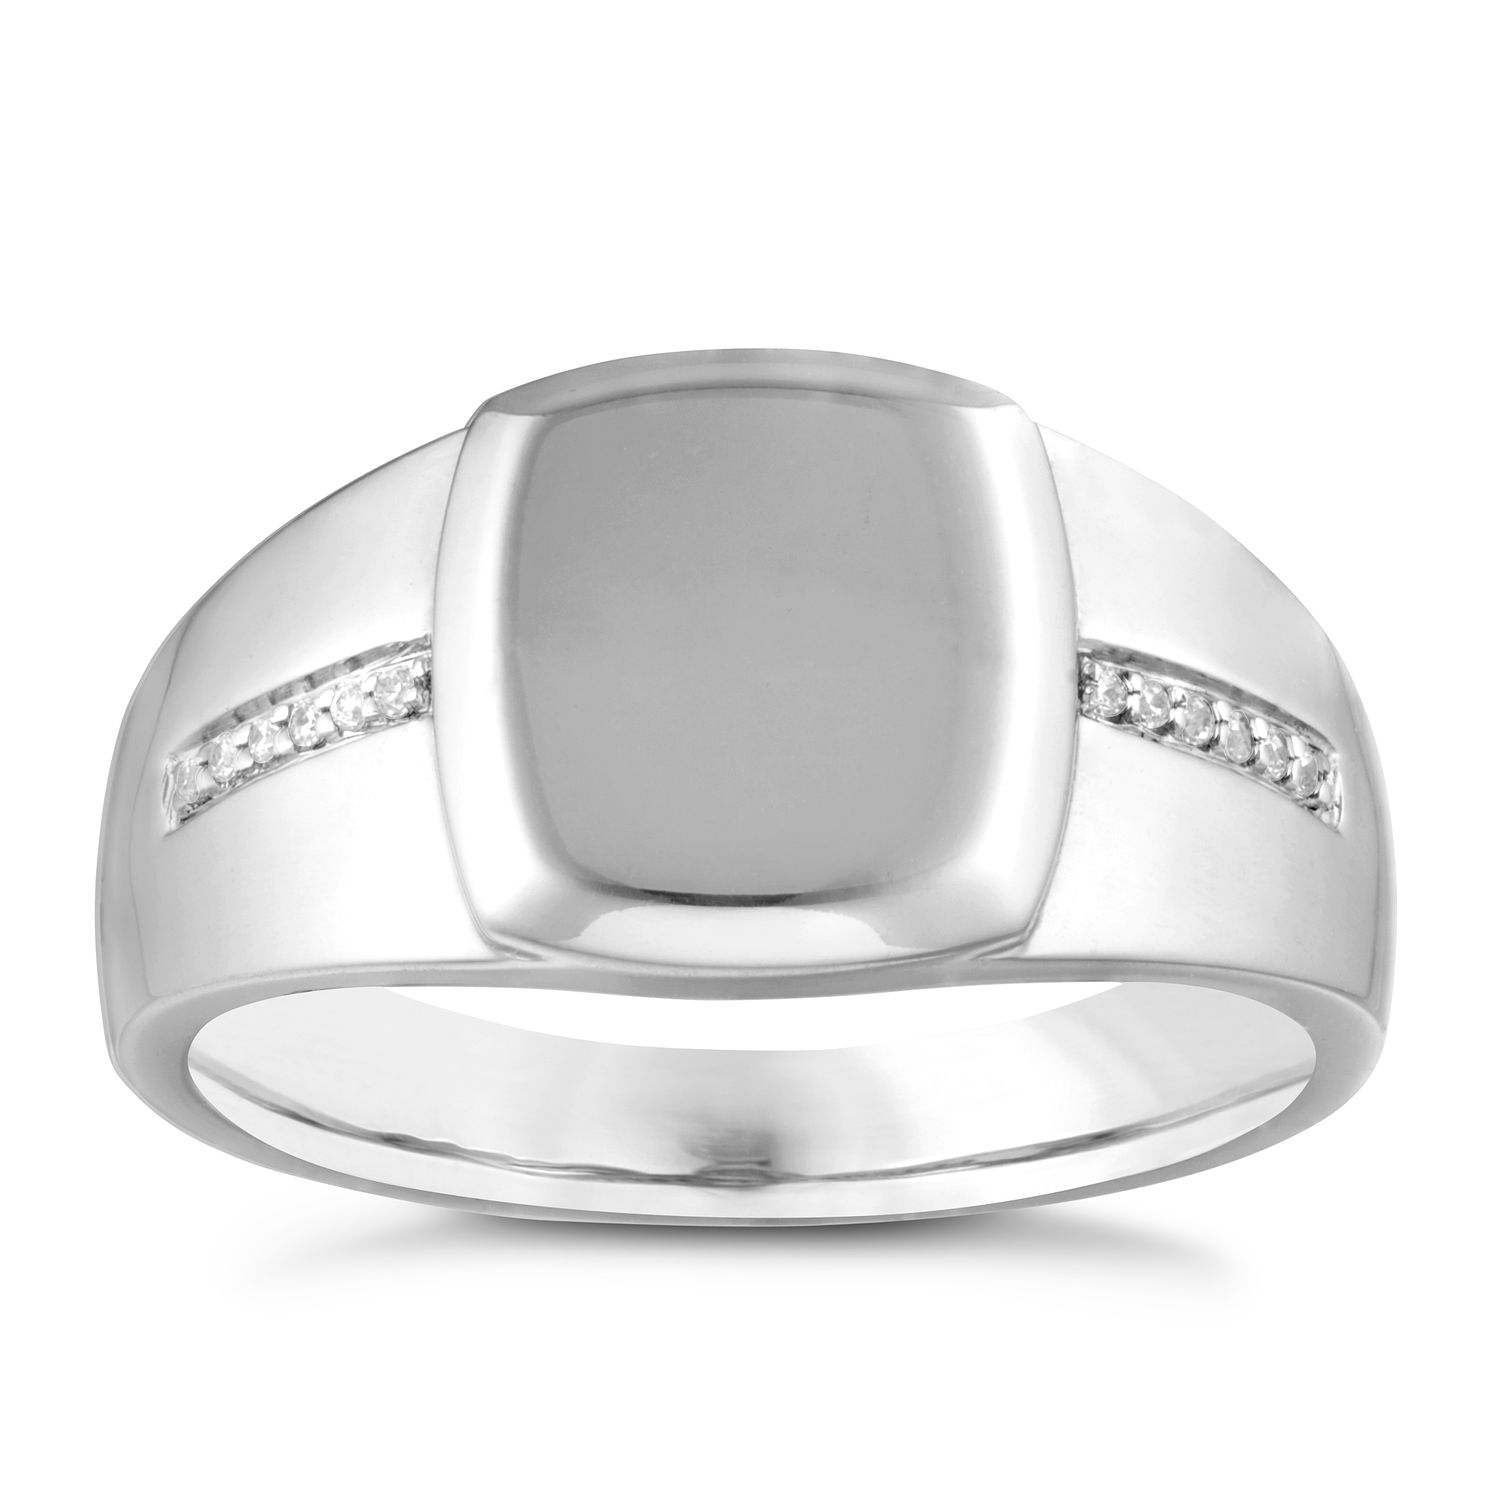 Sterling Silver Men's Diamond And Plain Cushion Ring - Product number 3938840